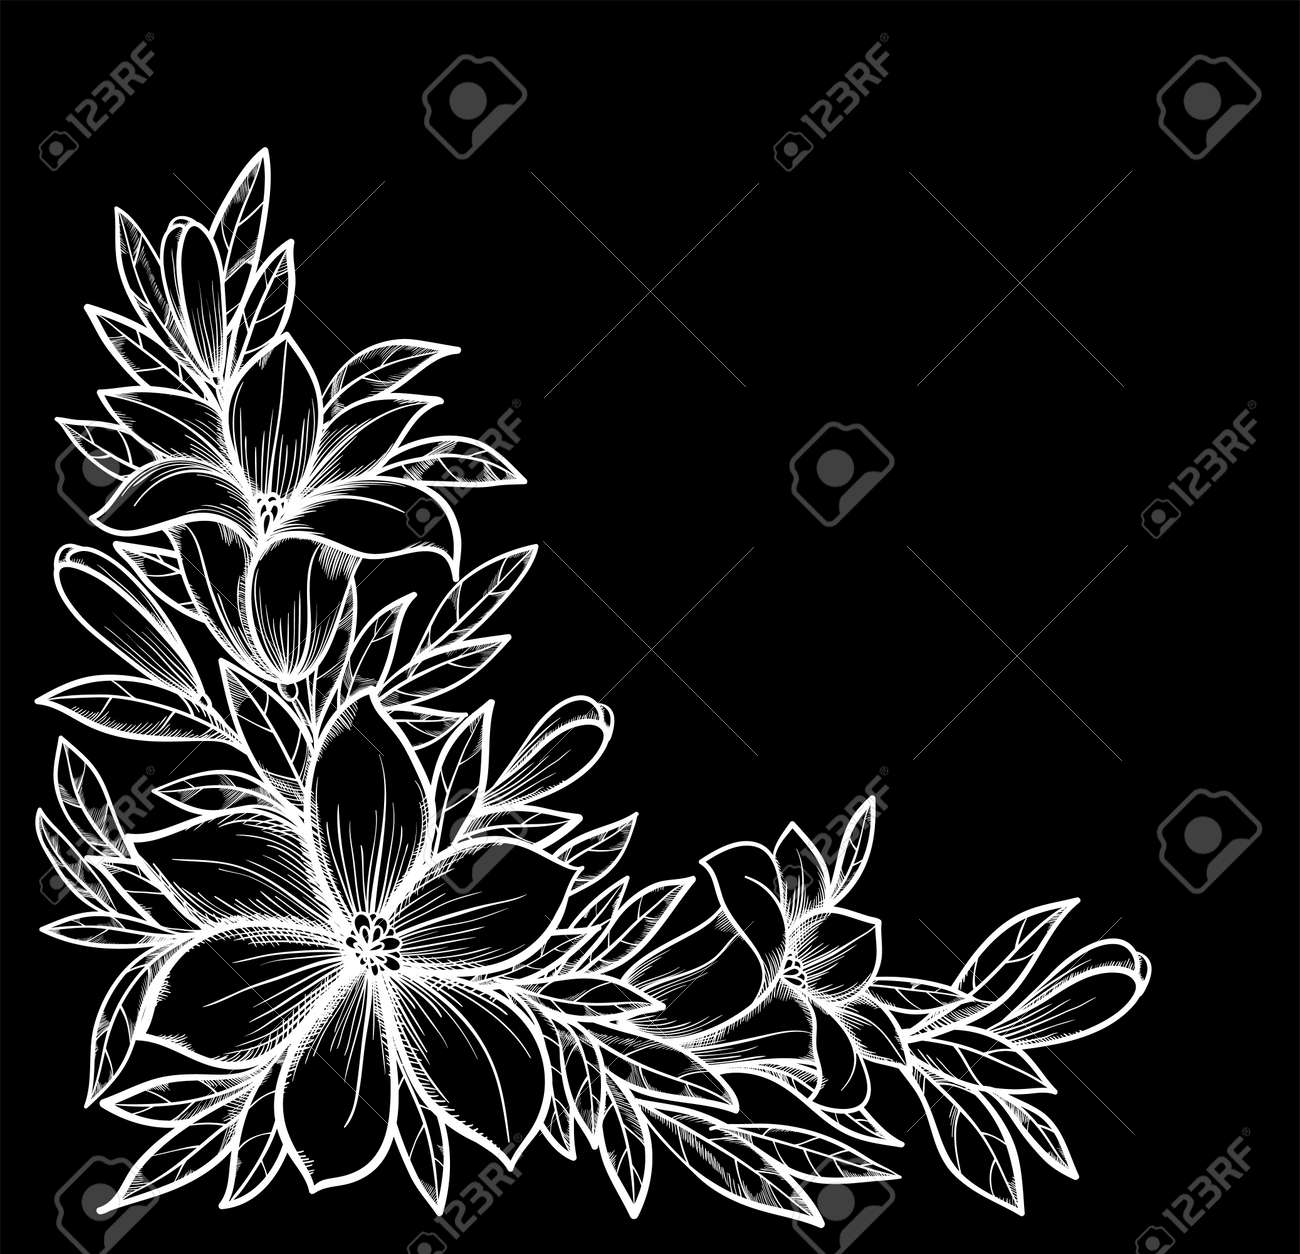 Beautiful Black And White Branch With Flowers Background For